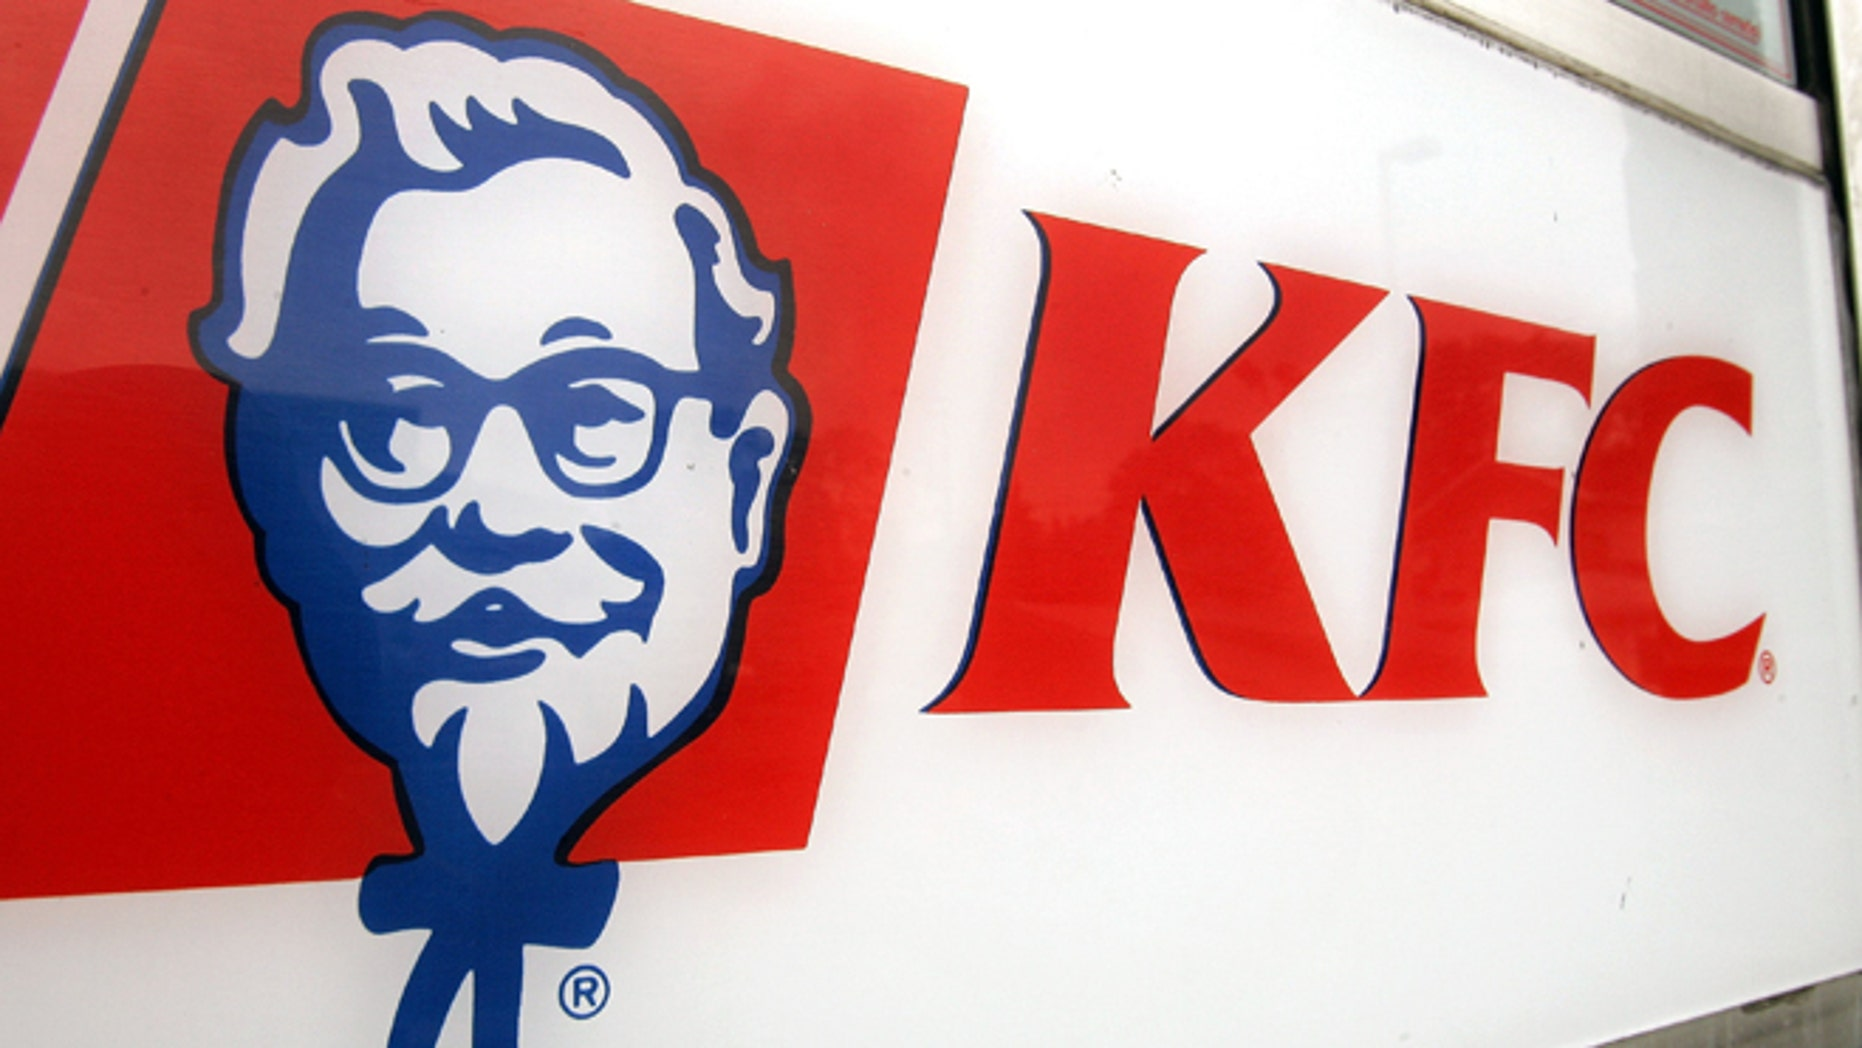 """CHICAGO - AUGUST 15: KFC signage is visible on a door of a cigarette-smoke-free company-owned KFC restaurant August 15, 2005 in Chicago, Illinois. Louisville, Kentucky-based Yum! Brands' company-owned 1,200 KFC and 1,675 Pizza Hut restaurants starting this week will be enacting a no smoking policy, placing """"No Smoking"""" signs in their US restaurants owned by the company. The company is encouraging their other 4,200 KFC and 4,600 Pizza Hut franchised restaurants in the US to follow.  (Photo by Tim Boyle/Getty Images)"""